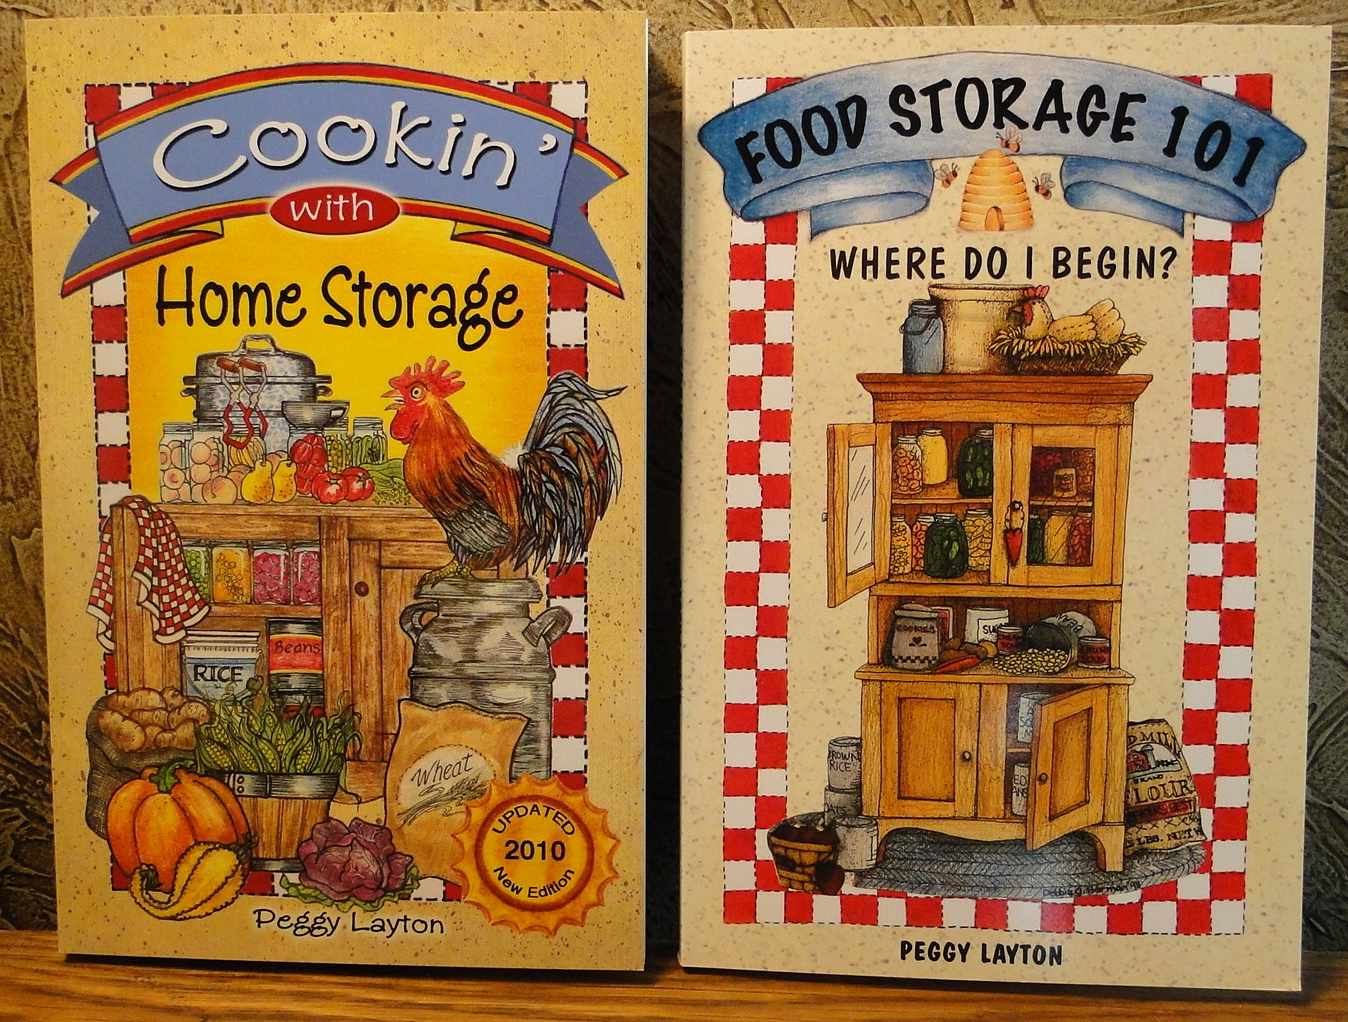 2 Book Special: Cookin' With Home Storage and Food Storage 101. Where do I Begin?